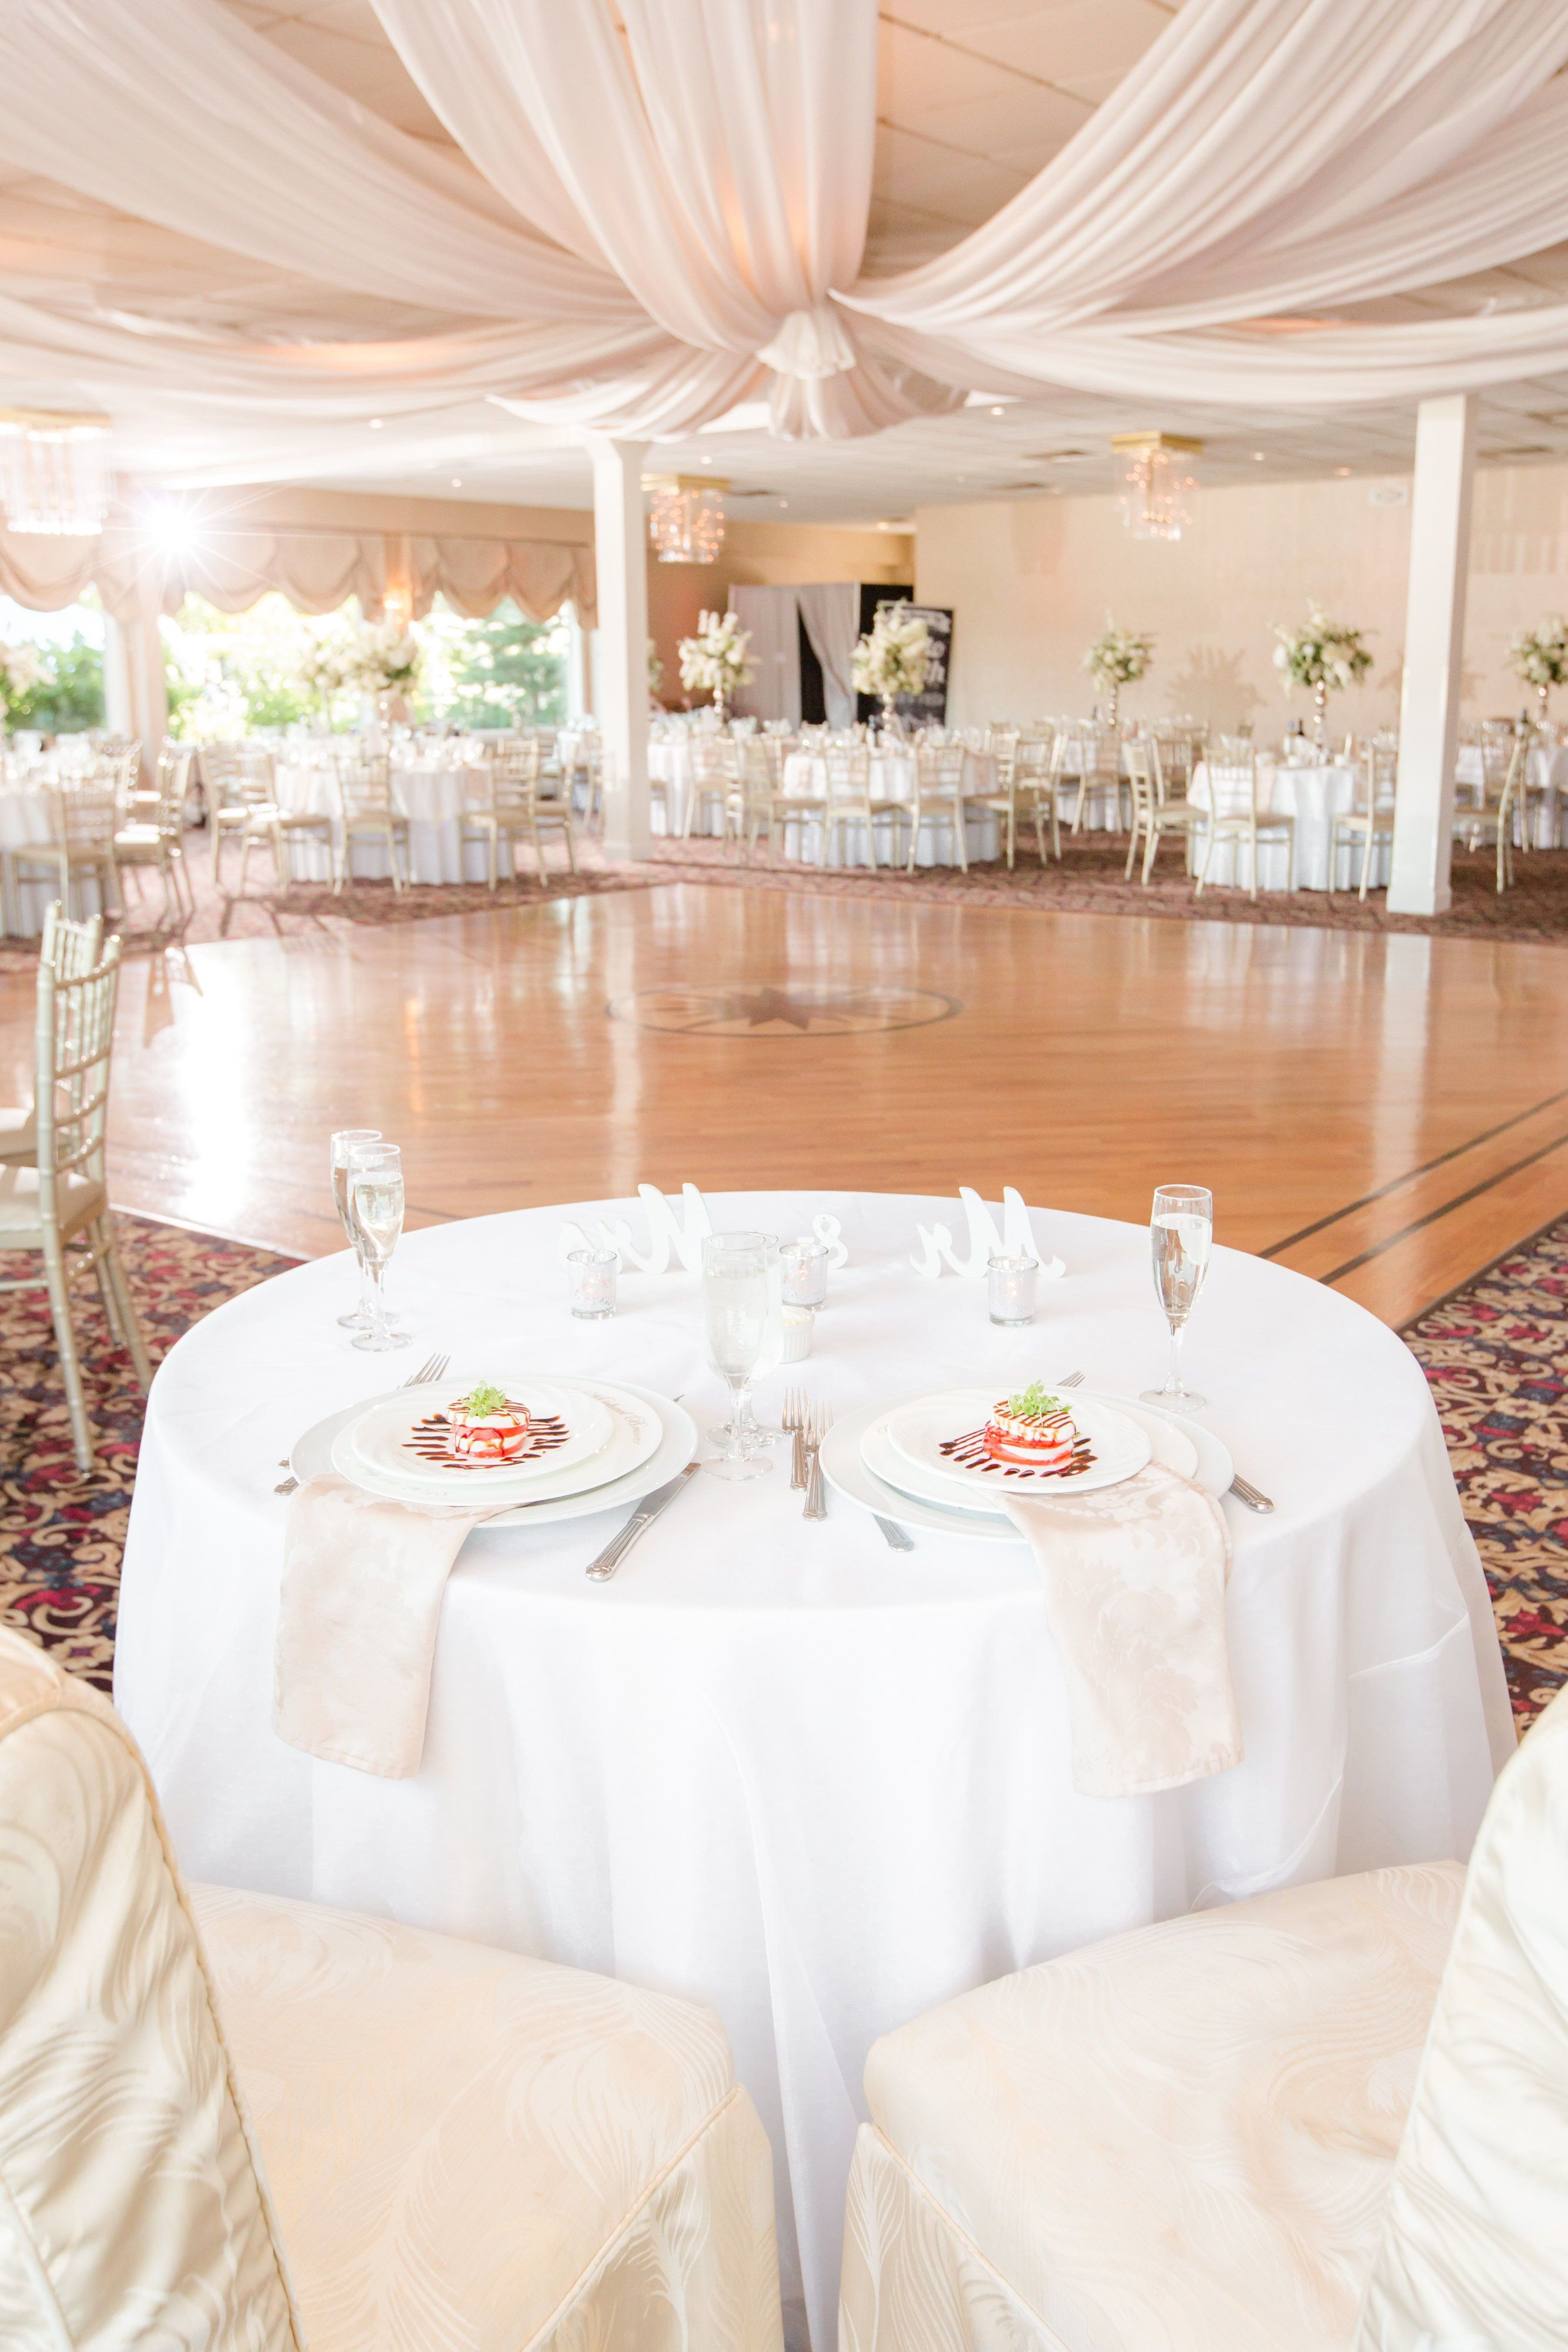 Head Sweetheart Table At The Crystal Point Yacht Club Planning A Summer Wedding Find Inspiration Here Weddings Photography